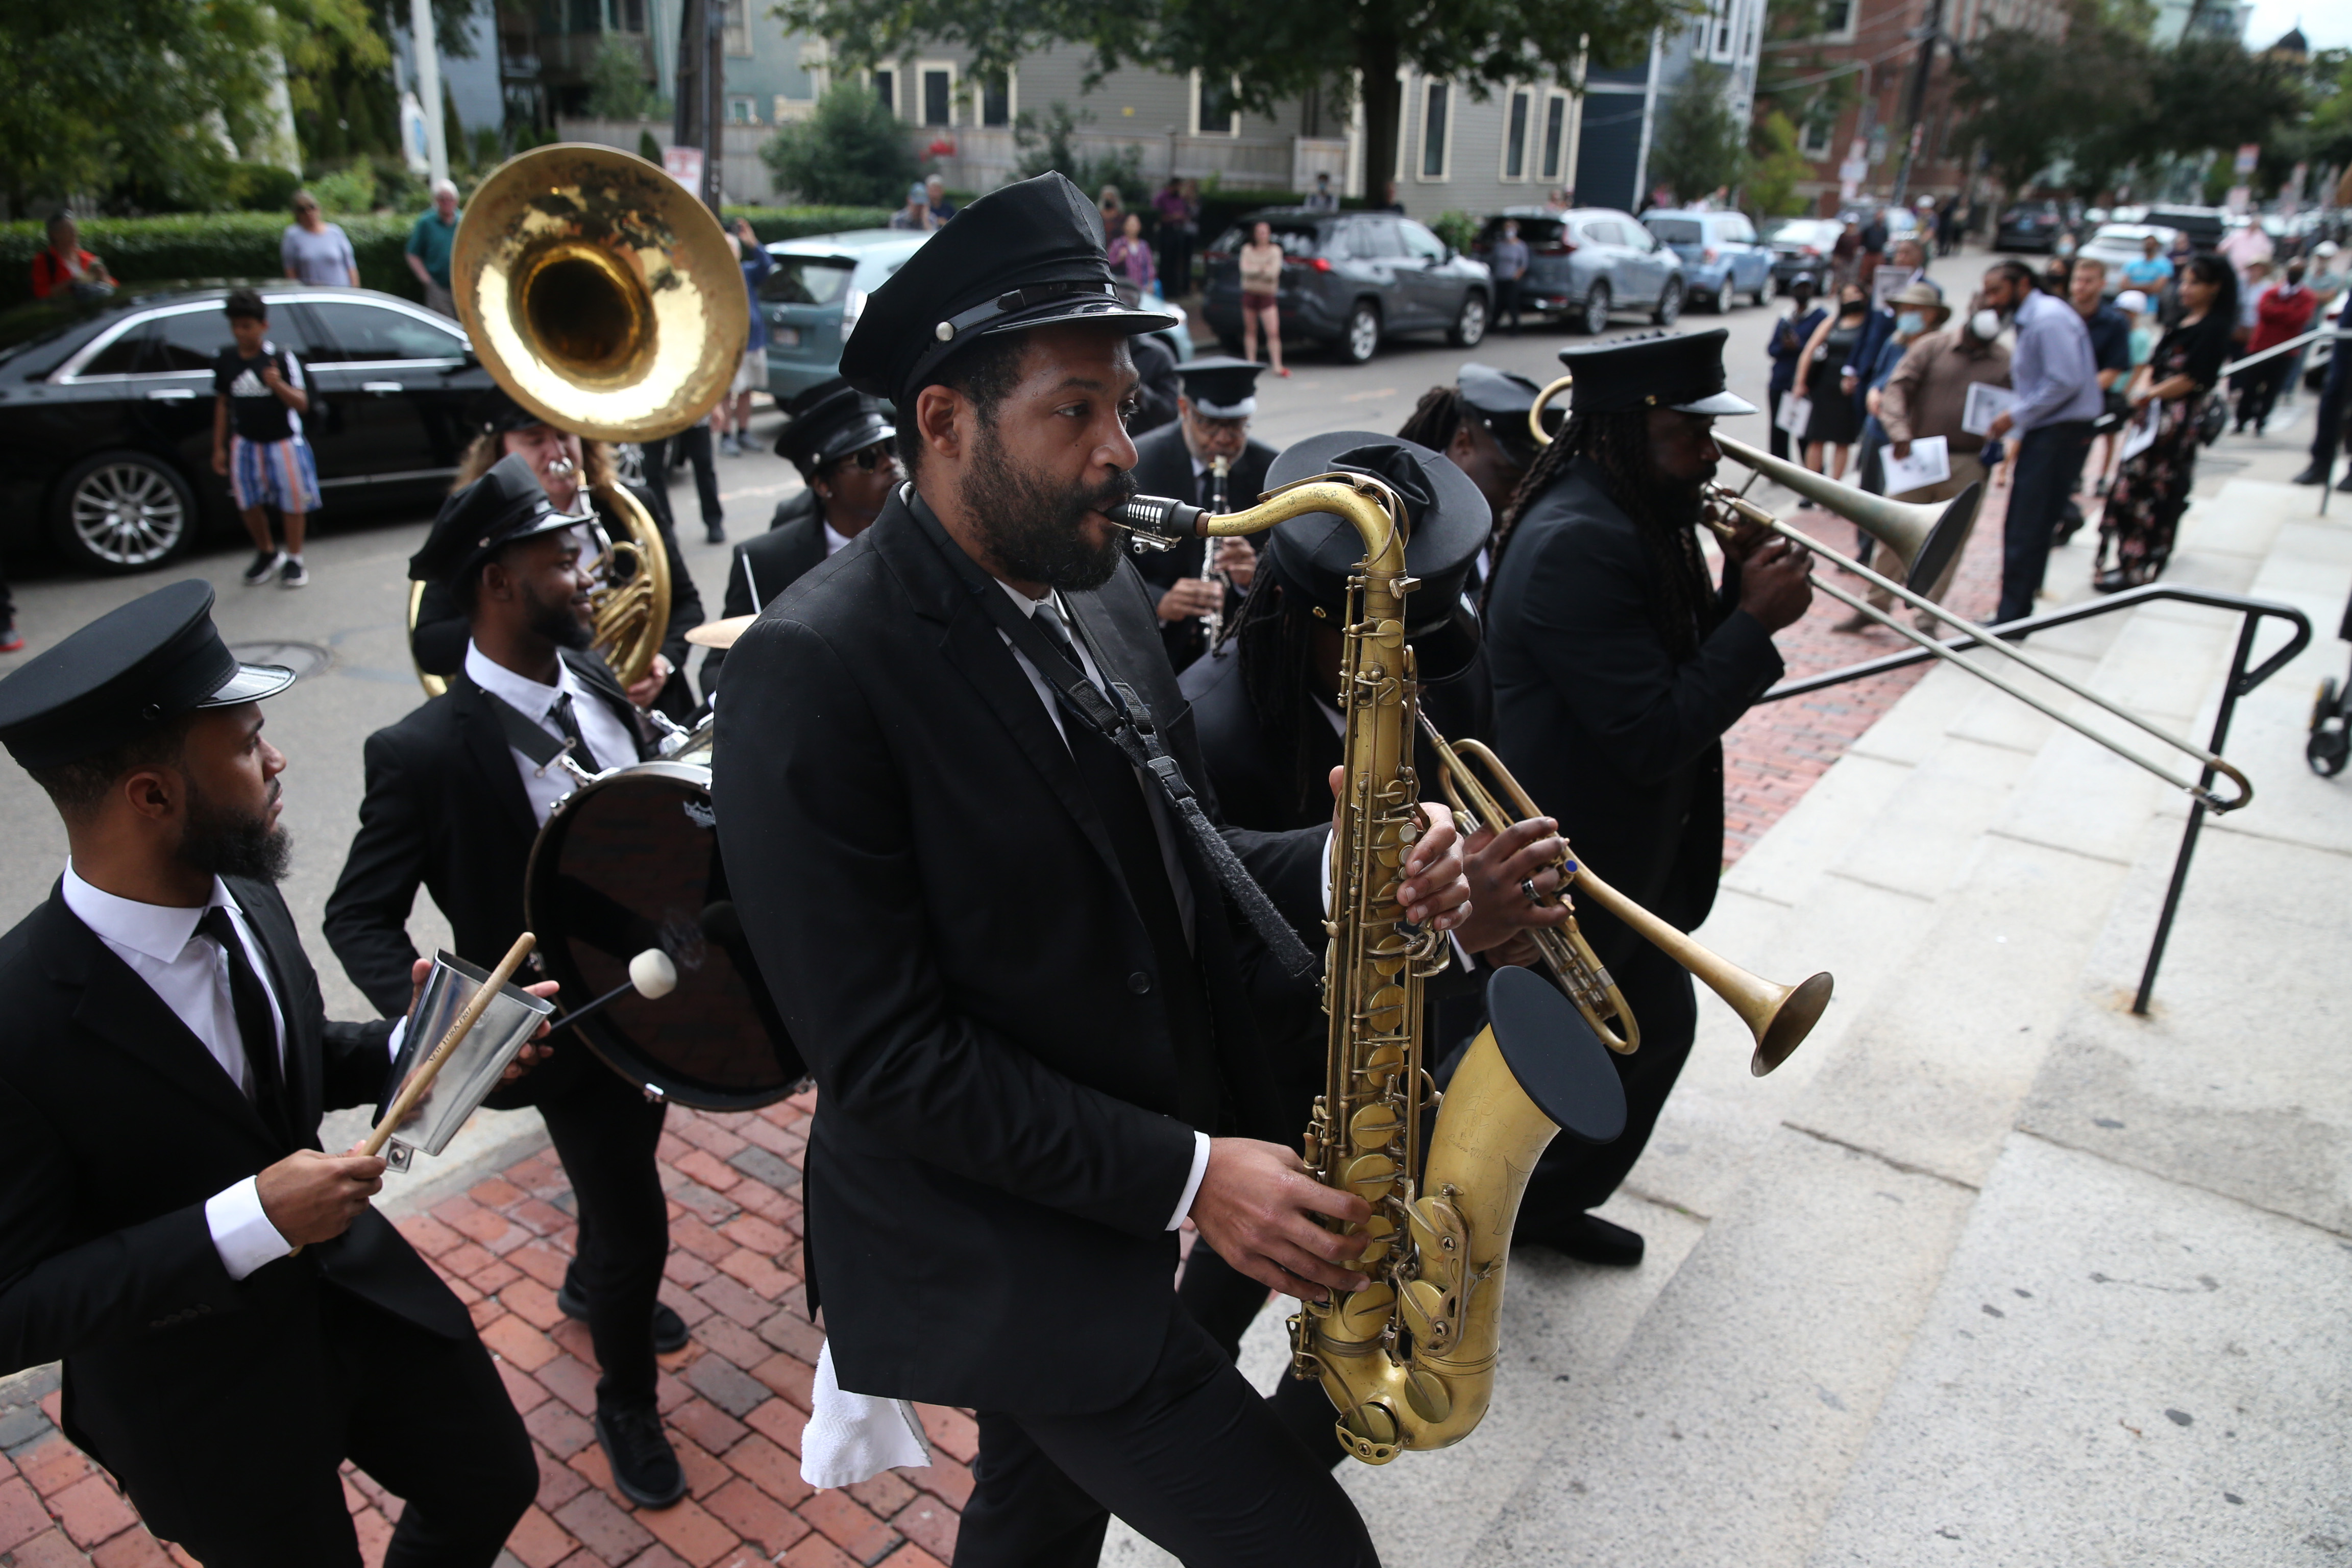 The memorial service was followed by a funeral procession in New Orleans ending in Starlight Square.  At the end of the service, members of the New Orleans Hot Eight Brass Band entered the church.